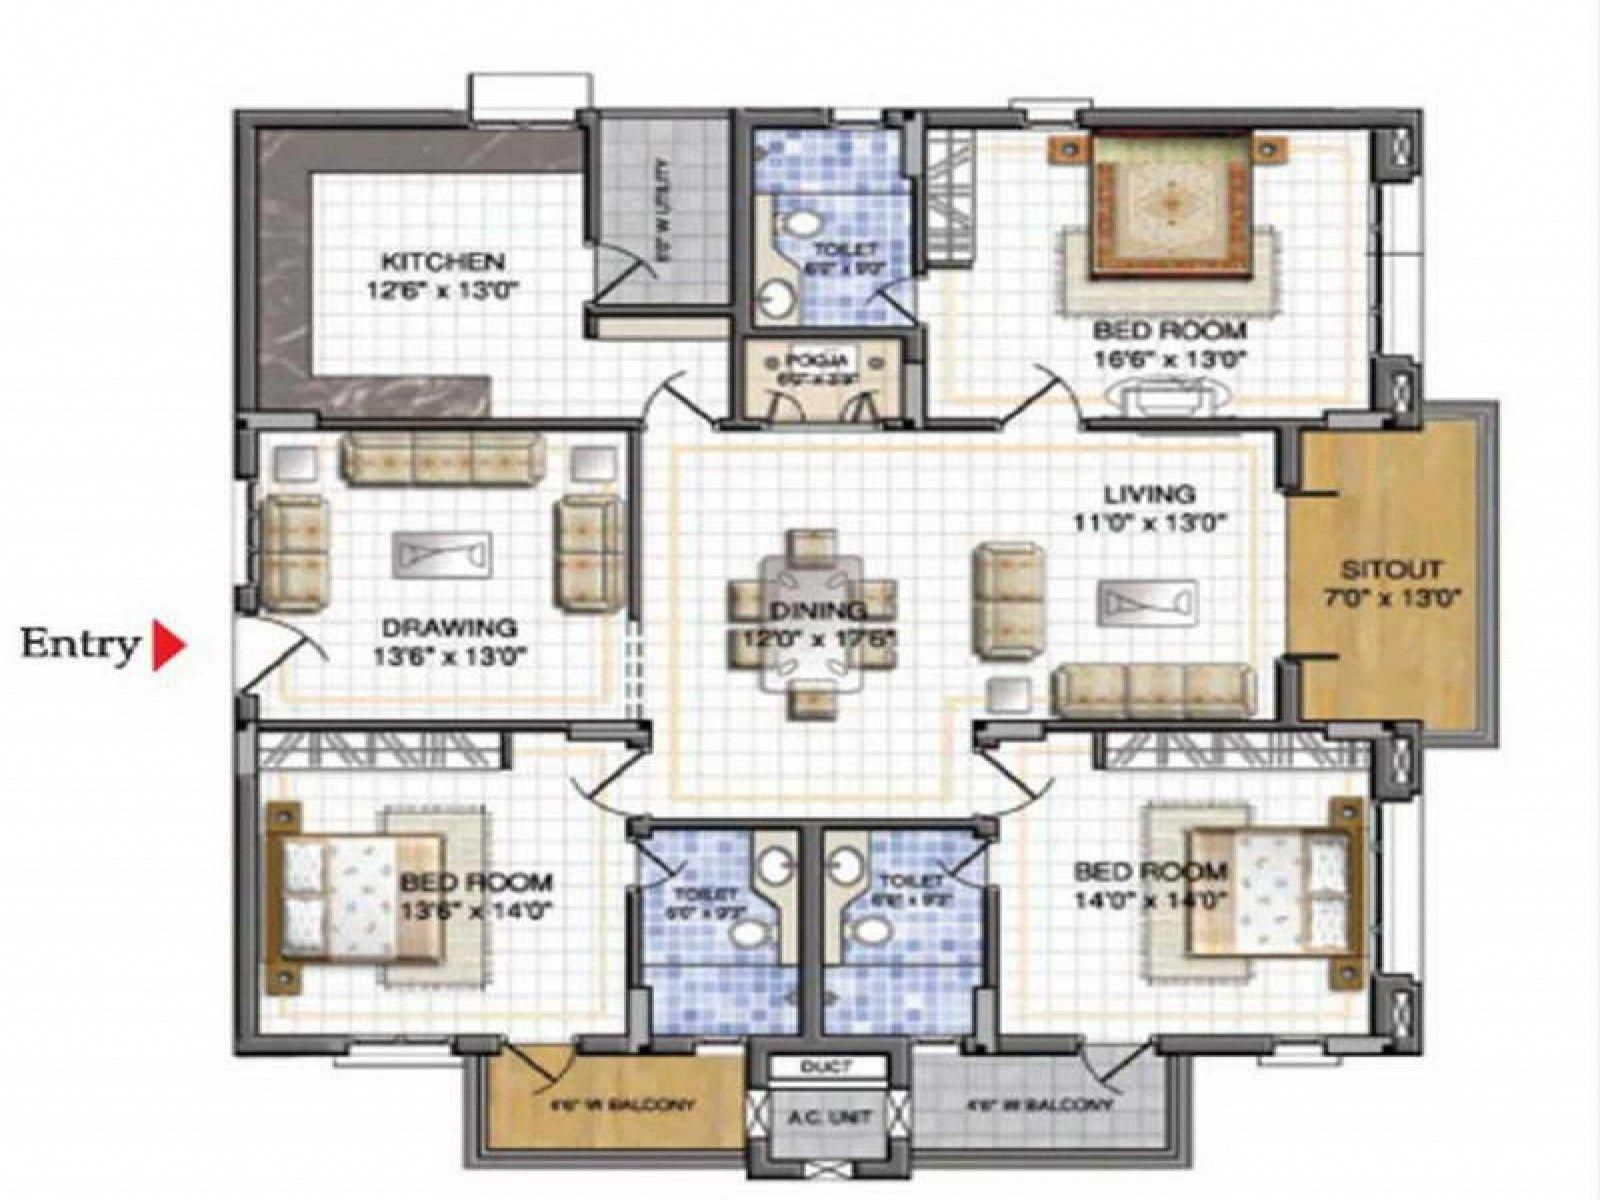 96 Interior Design Software Free Download For Pc Home